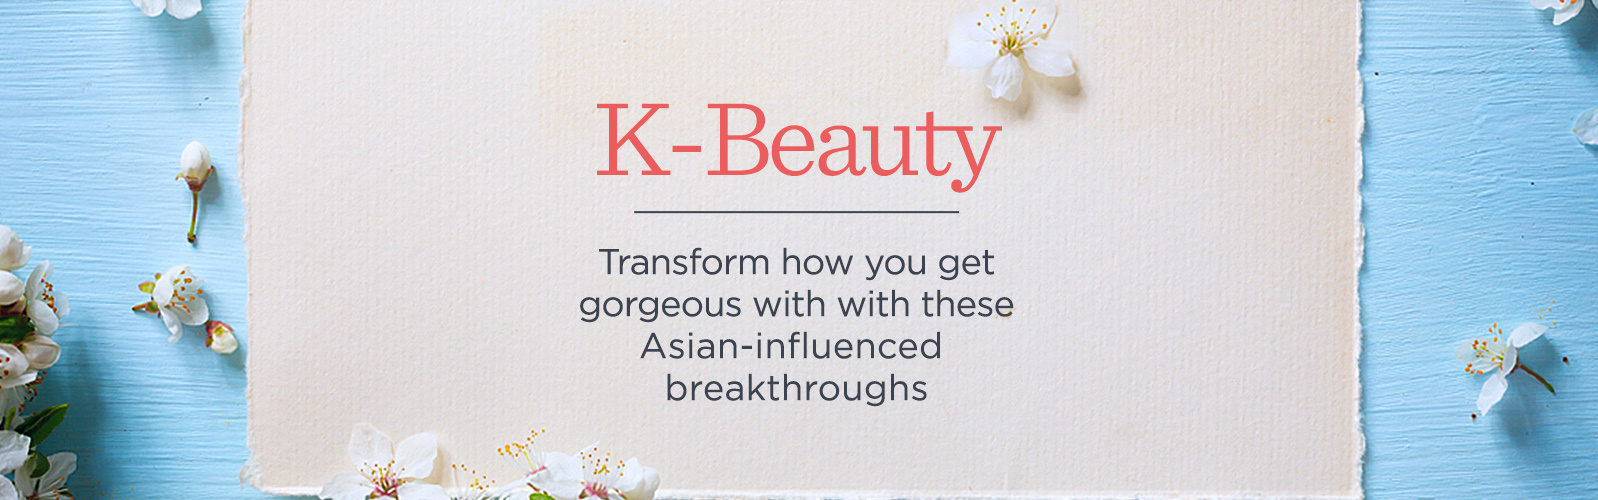 K-Beauty. Transform how you get gorgeous with these Asian-influenced breakthroughs.